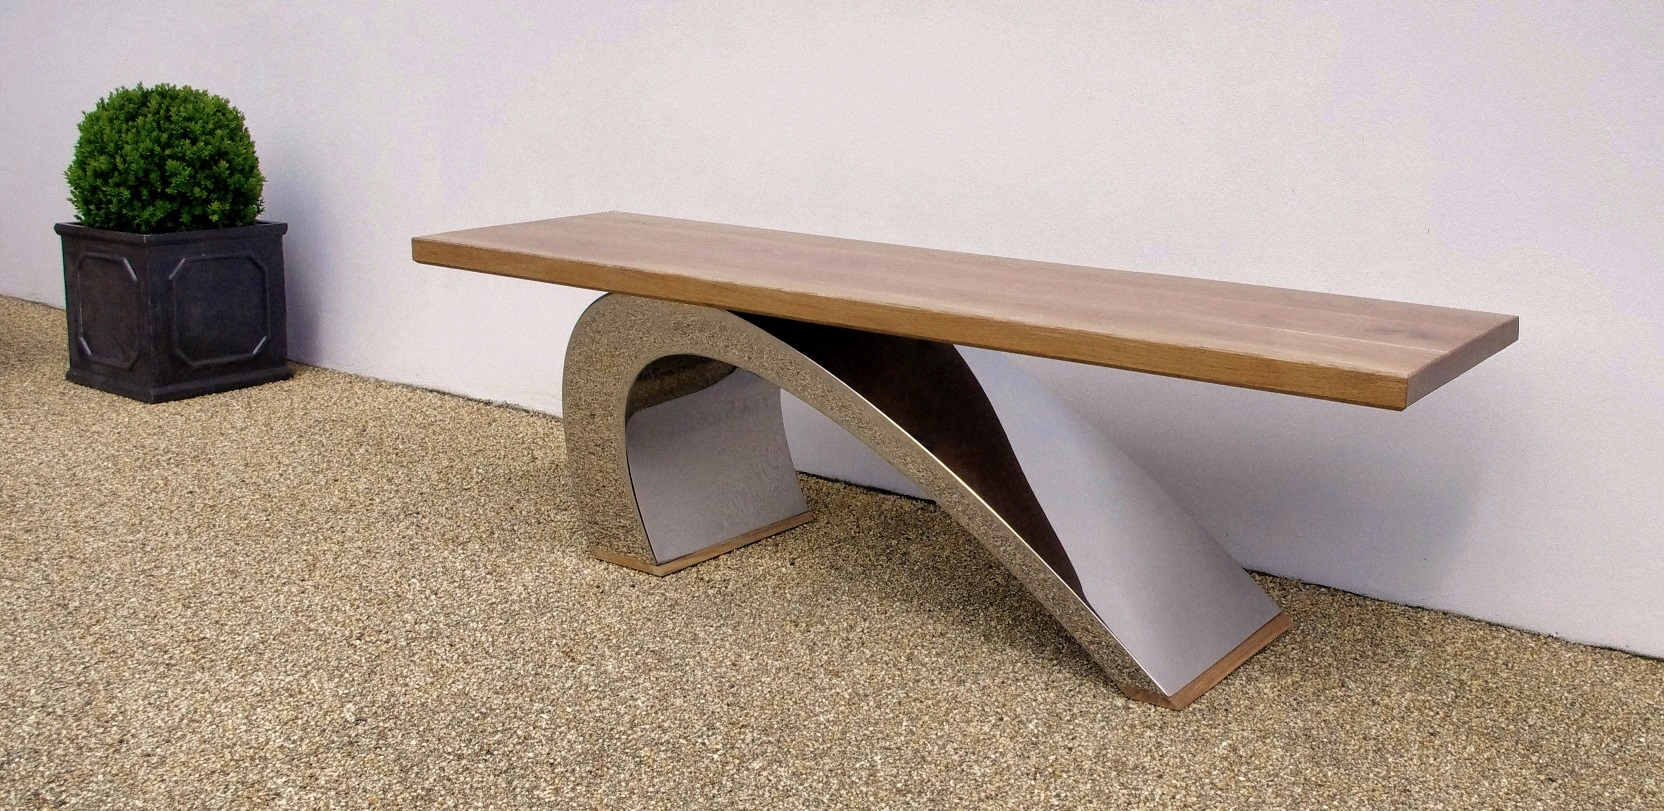 modern outdoor benches contemporary images  pixelmaricom - perfect sturdy elegance makes the metropolitan bench a backyard favoritemade from brushed aluminum and a sturdy polyurethane simulated wood top maywell